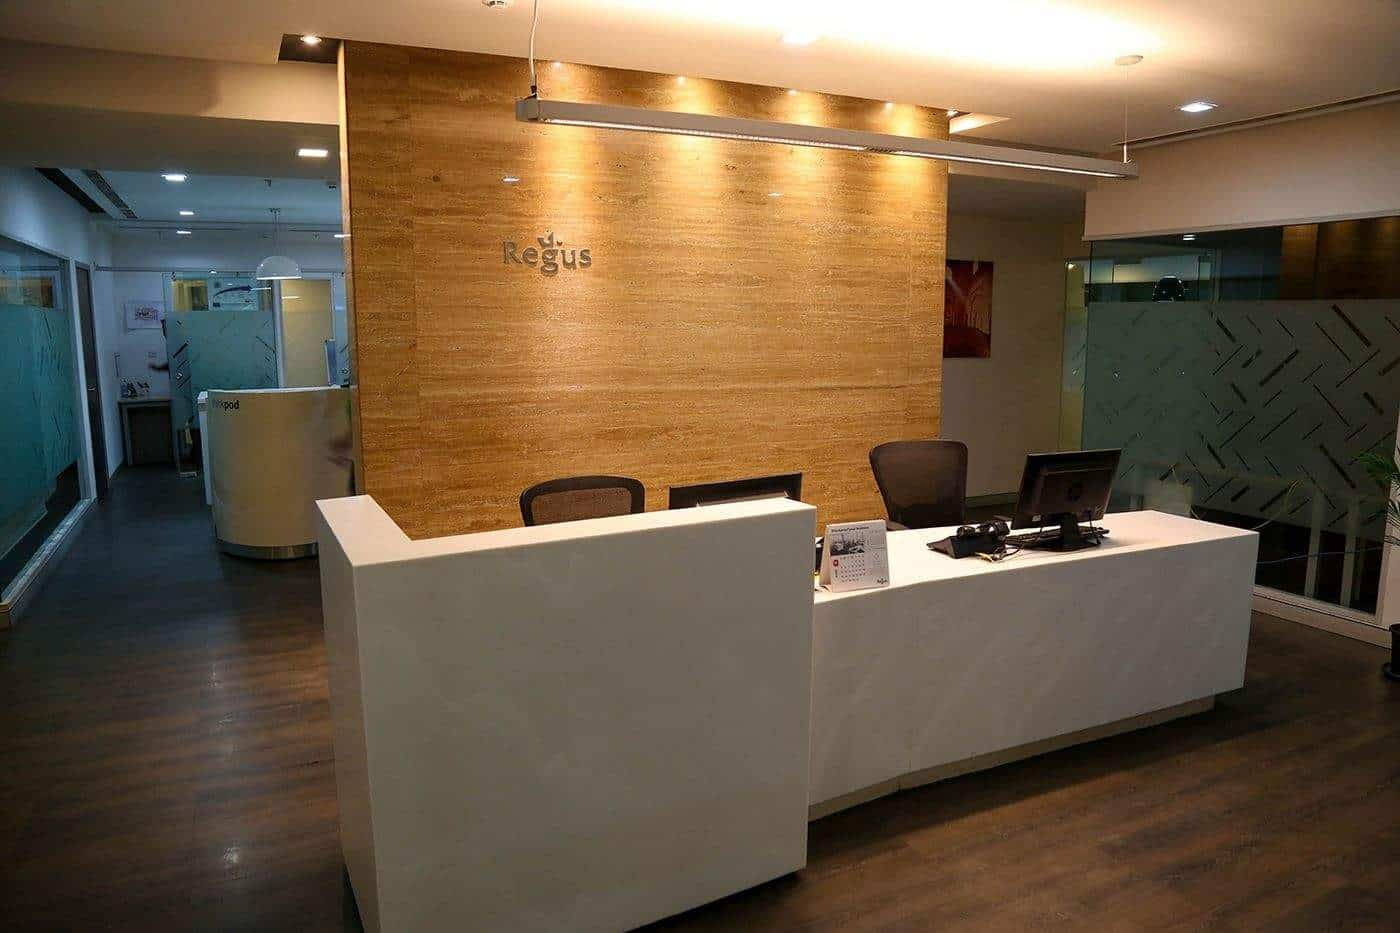 Regus Business Centre, Madhapur - Offices On Hire in